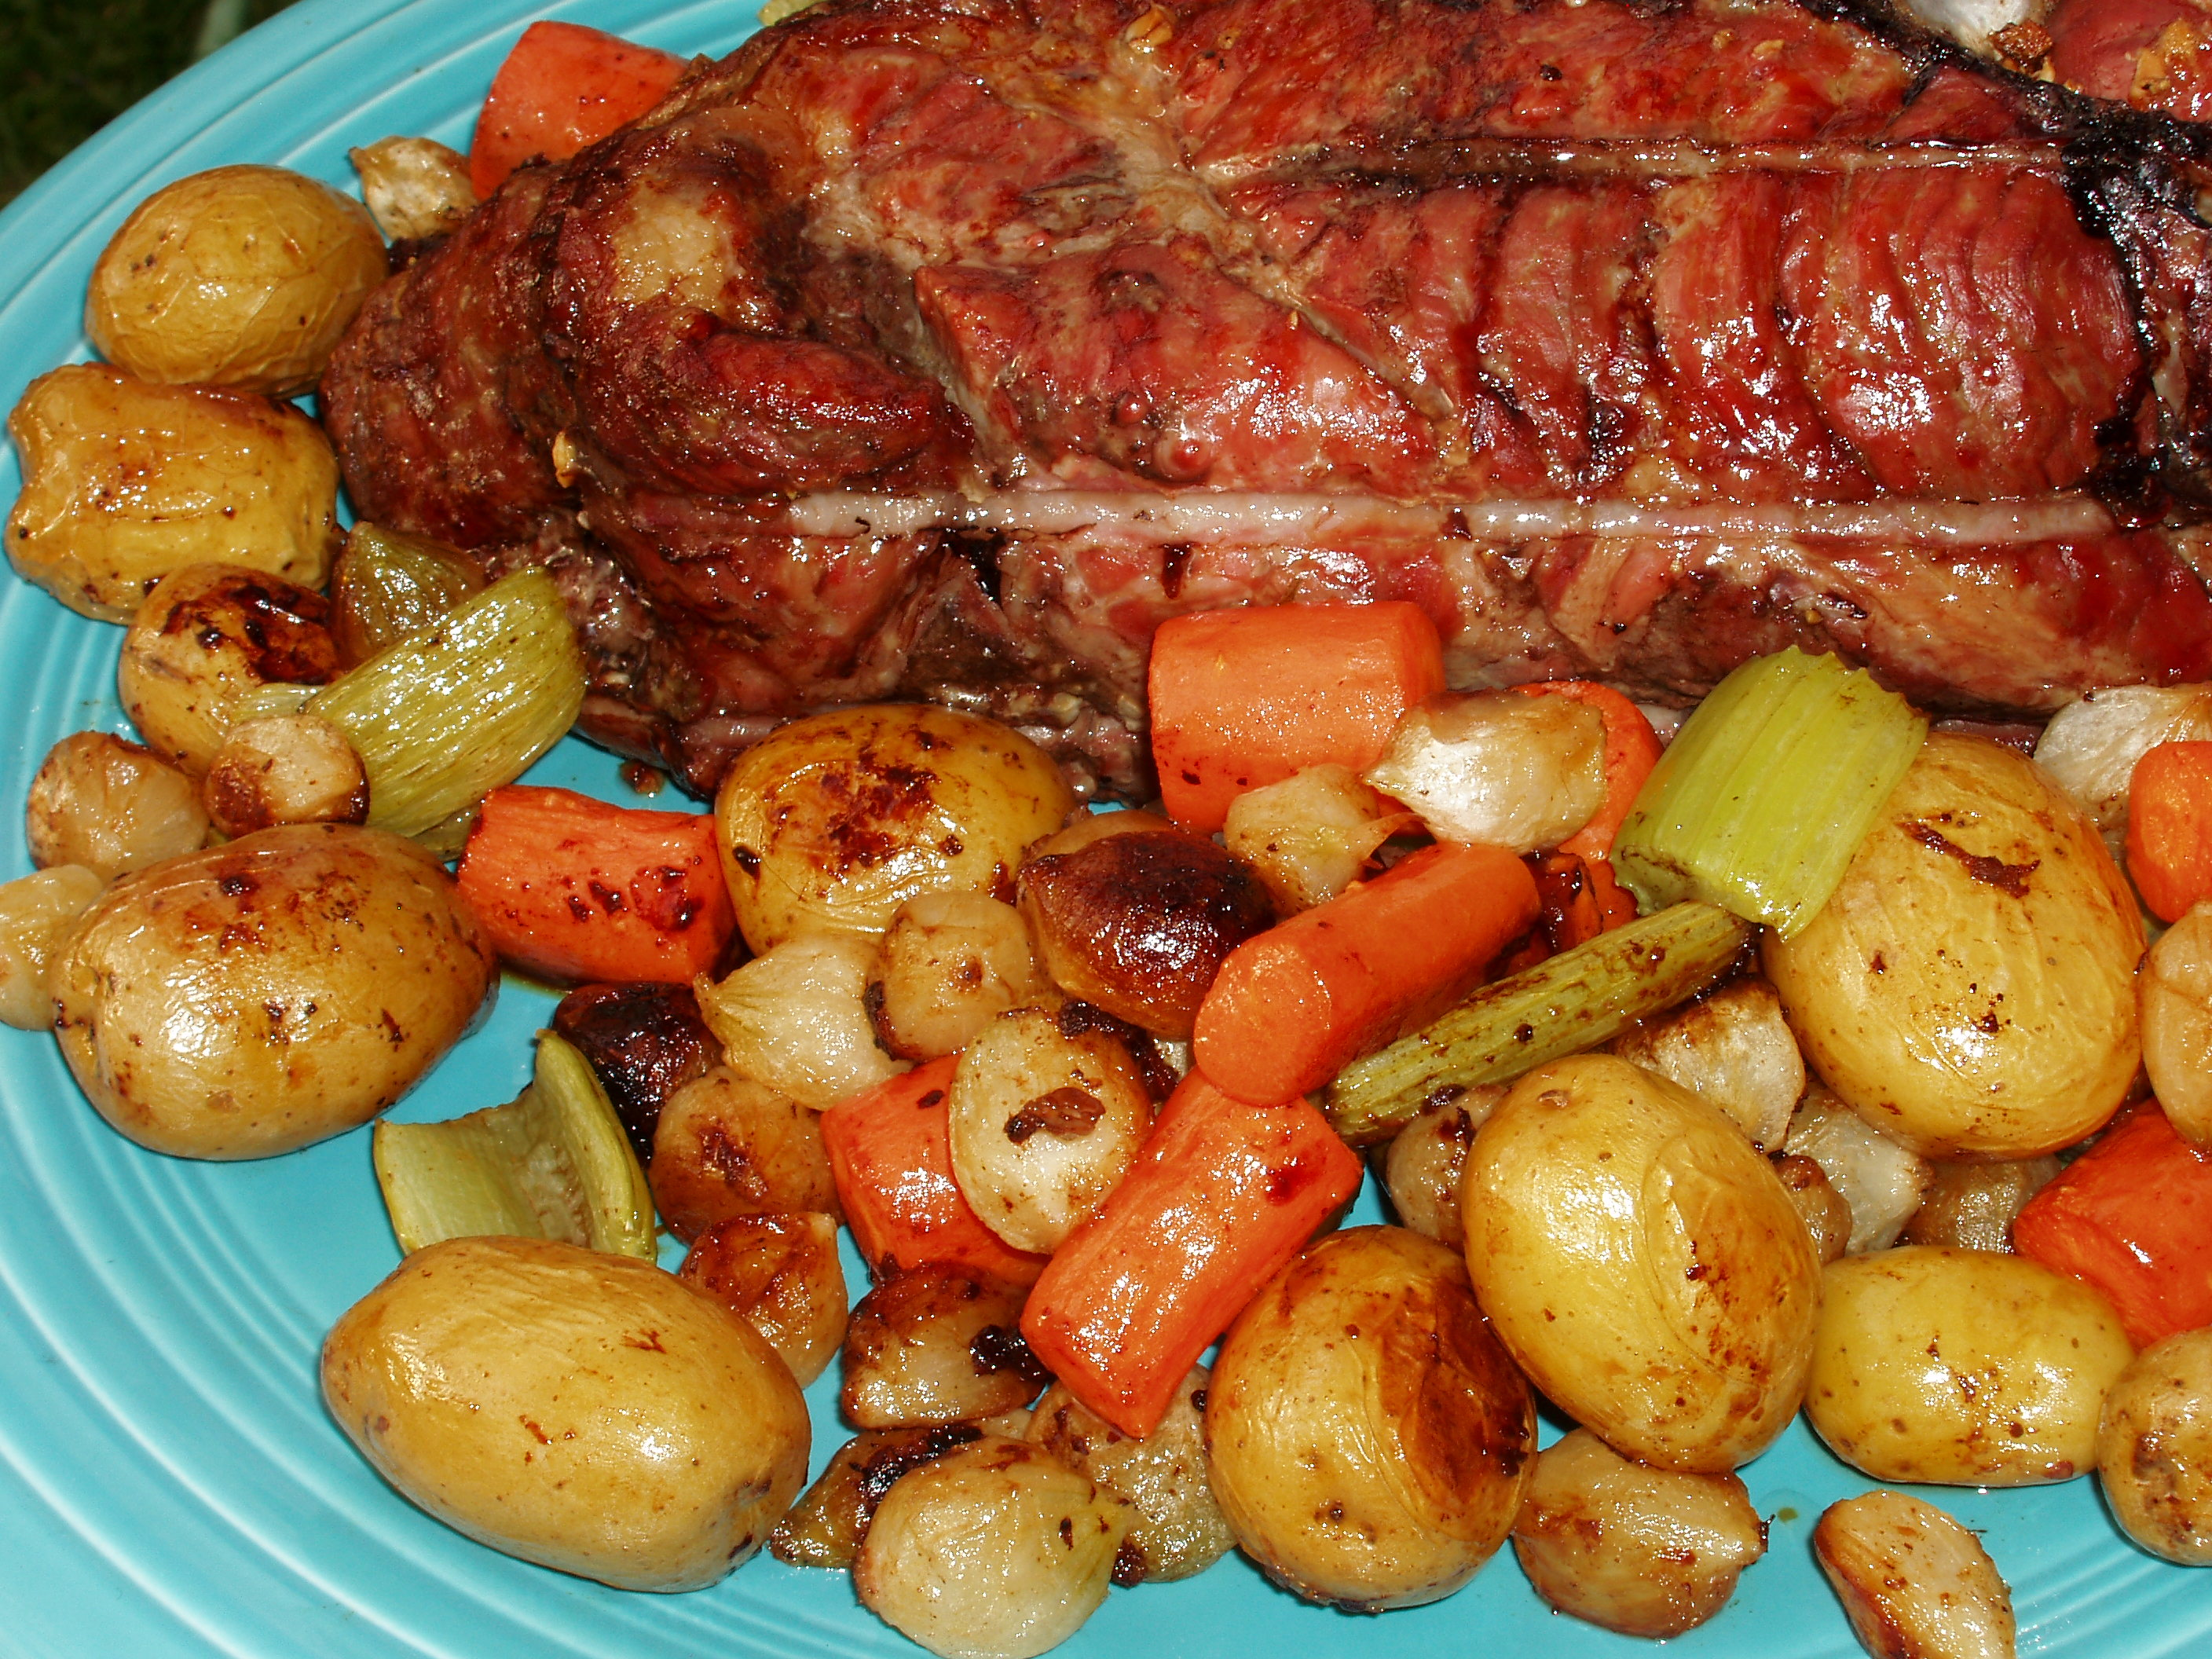 Simple Roast Pork and Vegetables